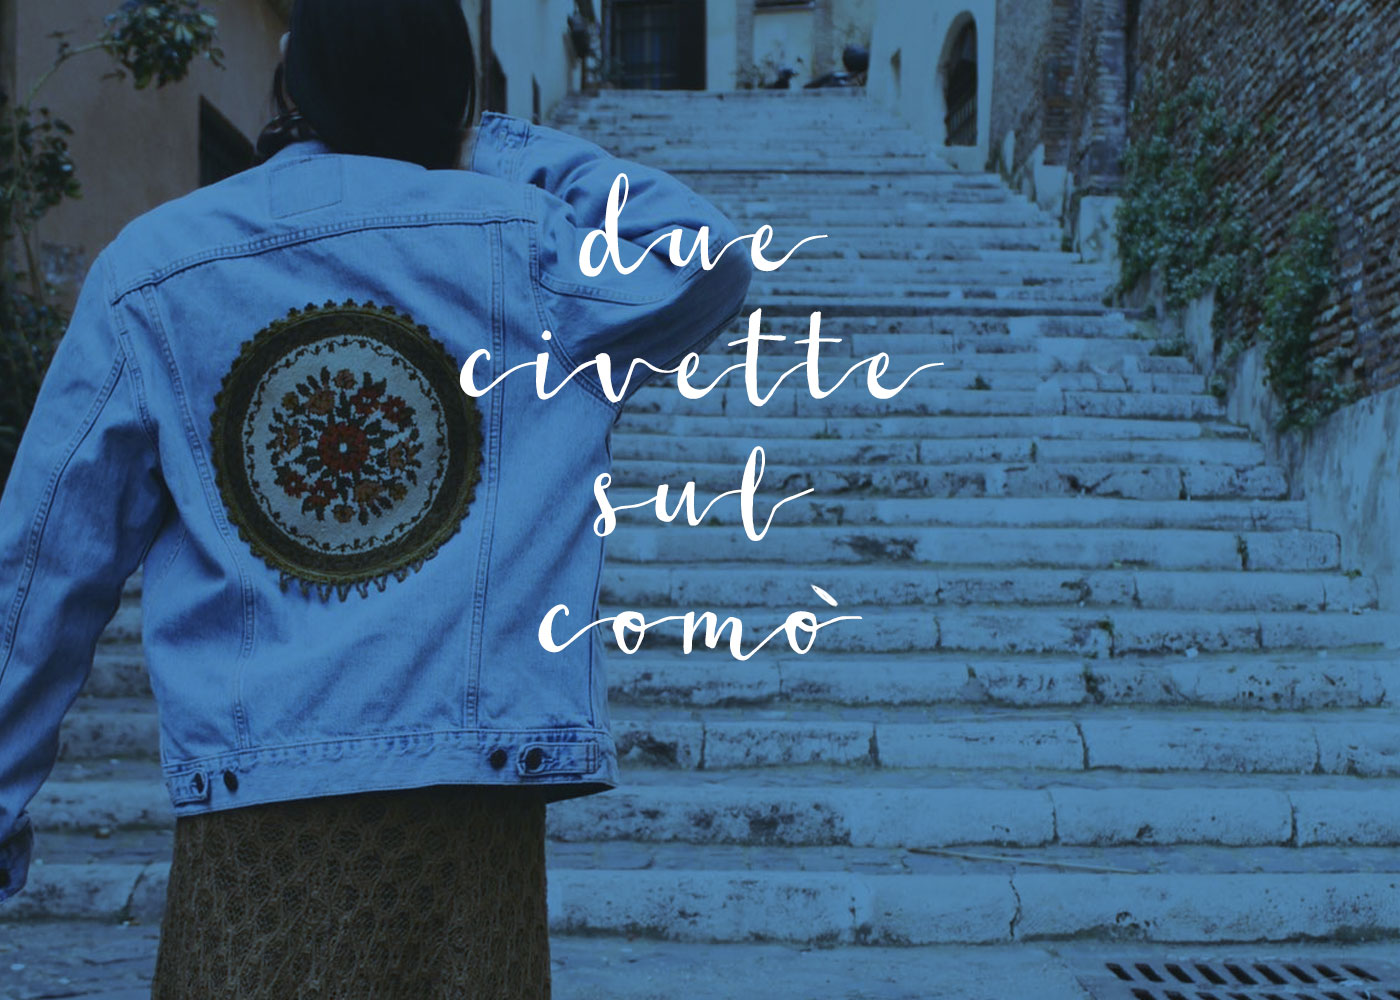 CRAFTERS: DUECIVETTESULCOMÒ | A Gipsy in the Kitchen